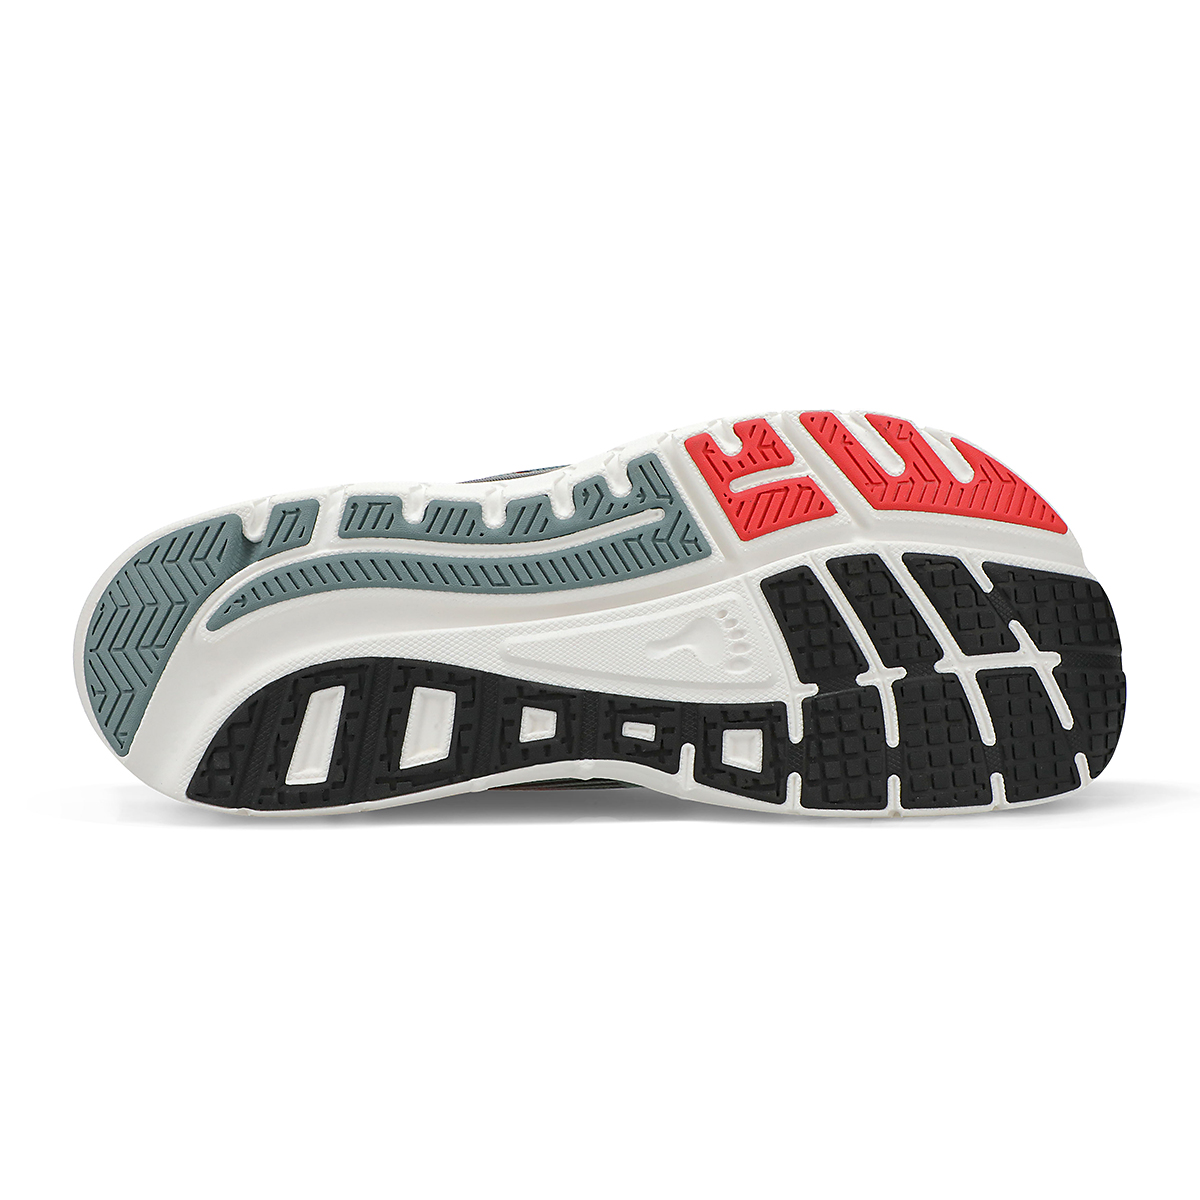 Men's Altra Provision 5 Running Shoe - Color: Light Gray/Red - Size: 7 - Width: Regular, Light Gray/Red, large, image 4